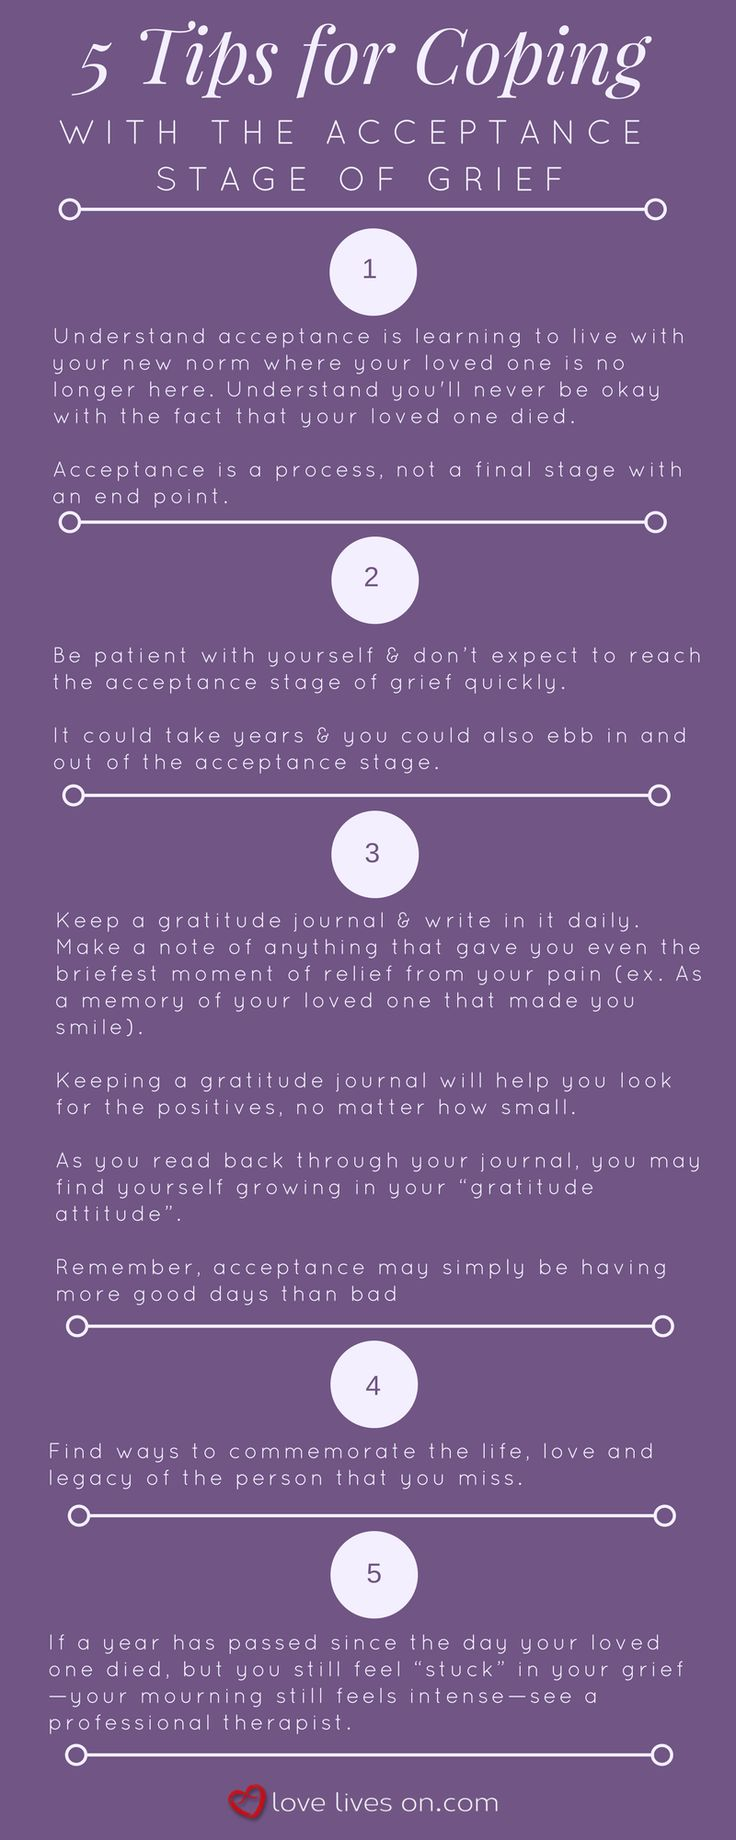 5 Tips for Coping with the Acceptance Stage of Grief.